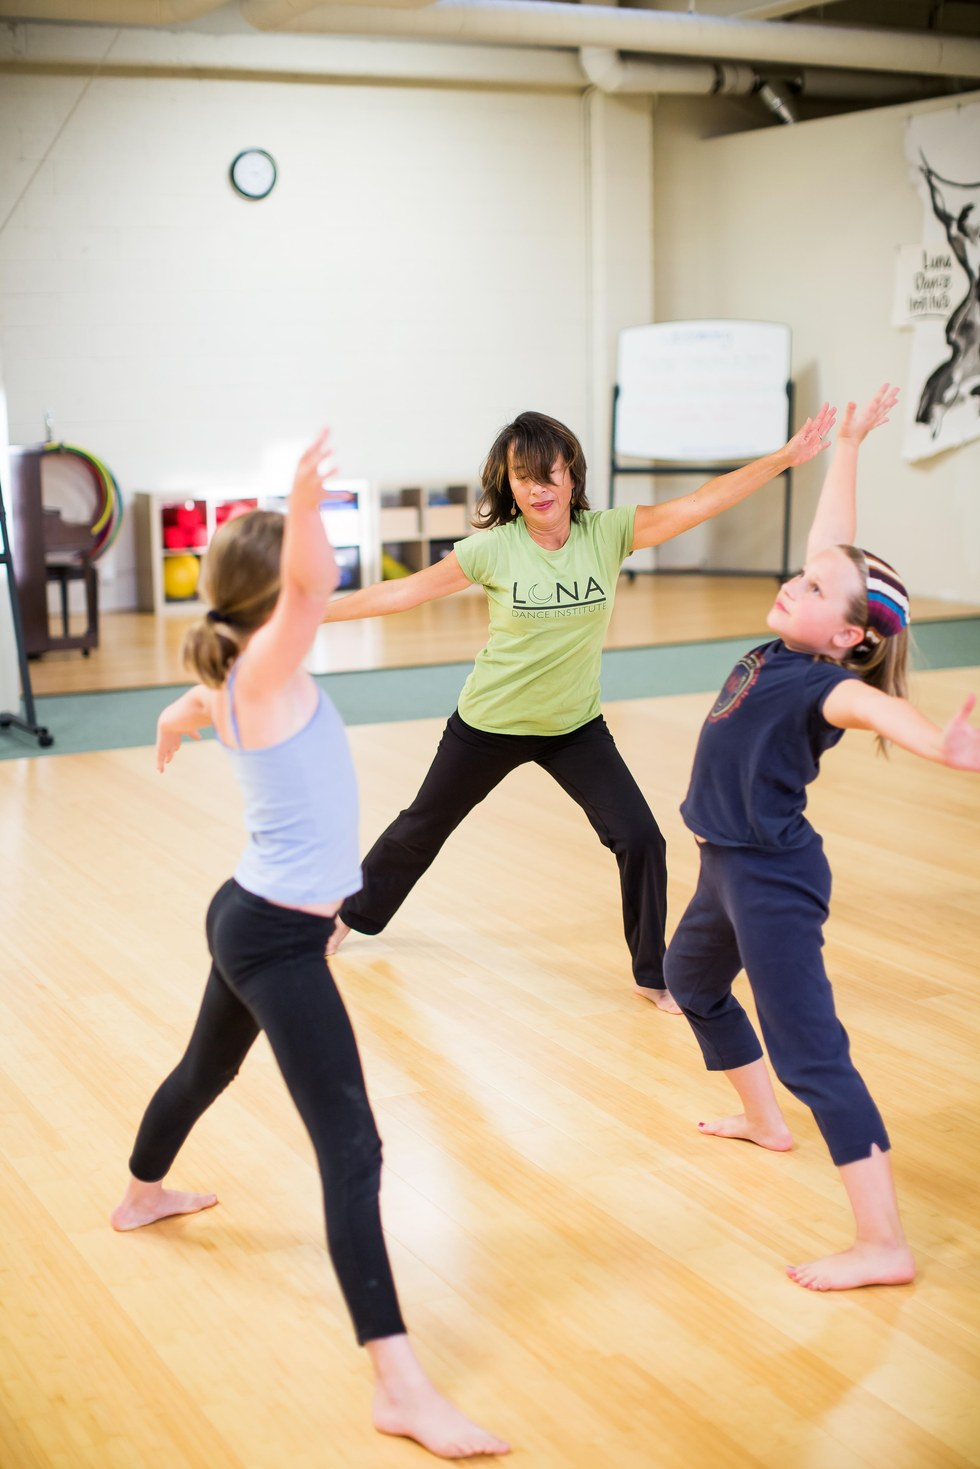 Childrens dance: features and specificity